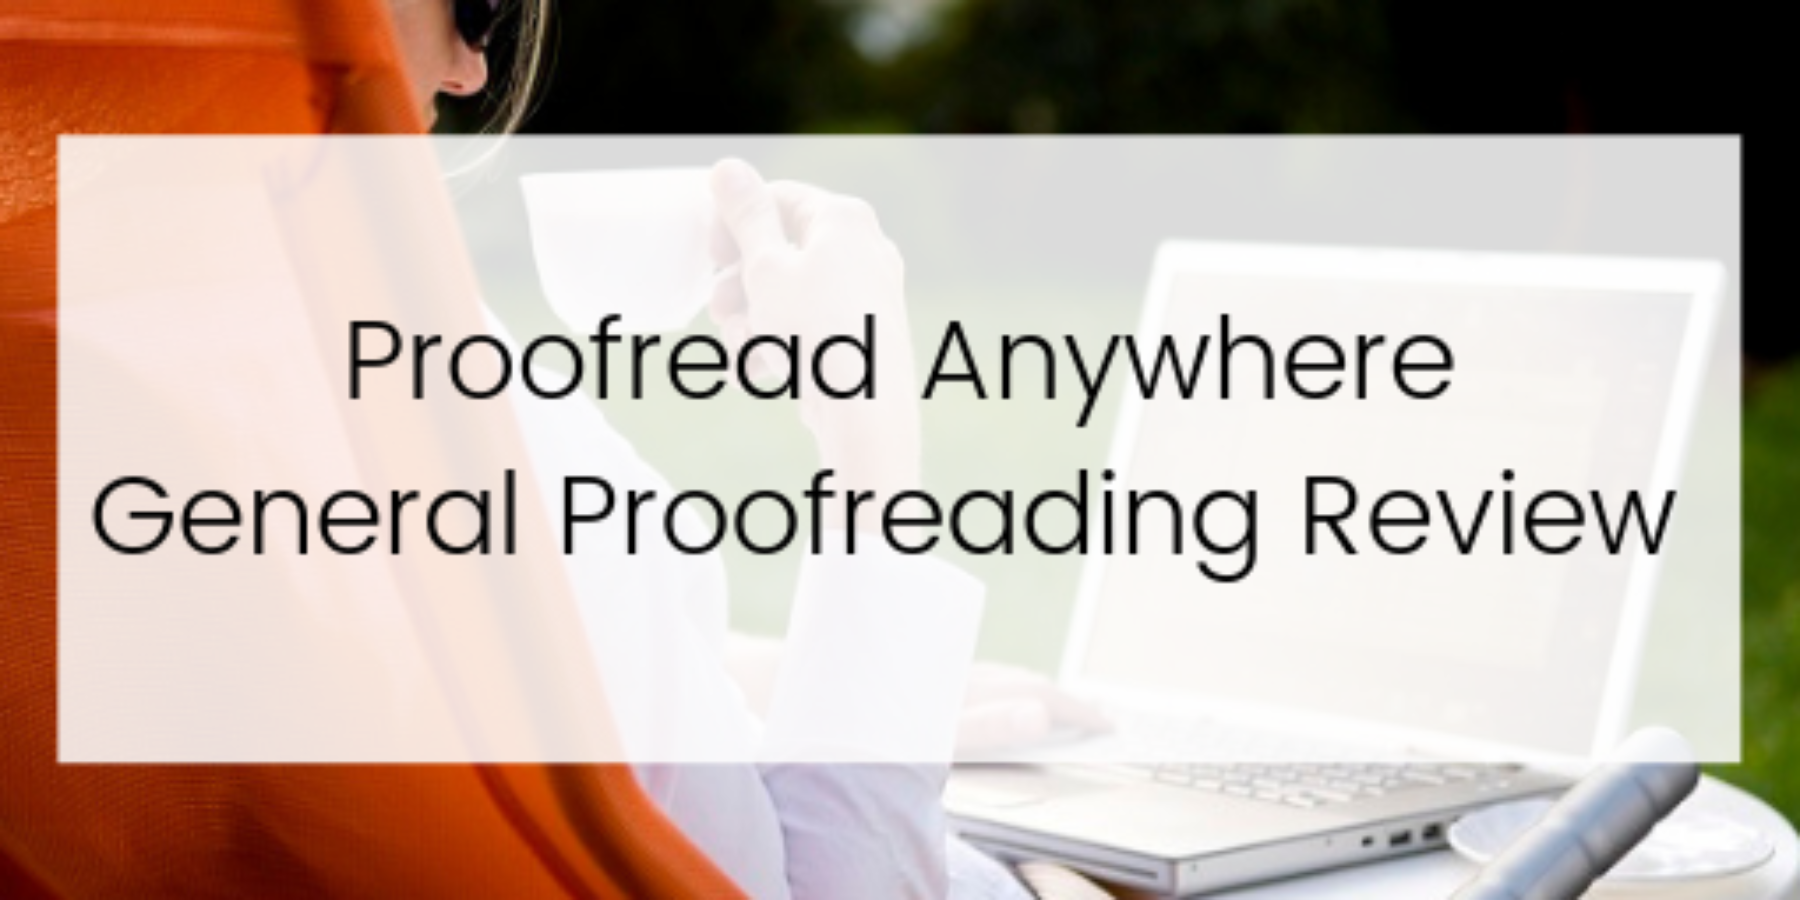 Proofread anywhere general proofreading review